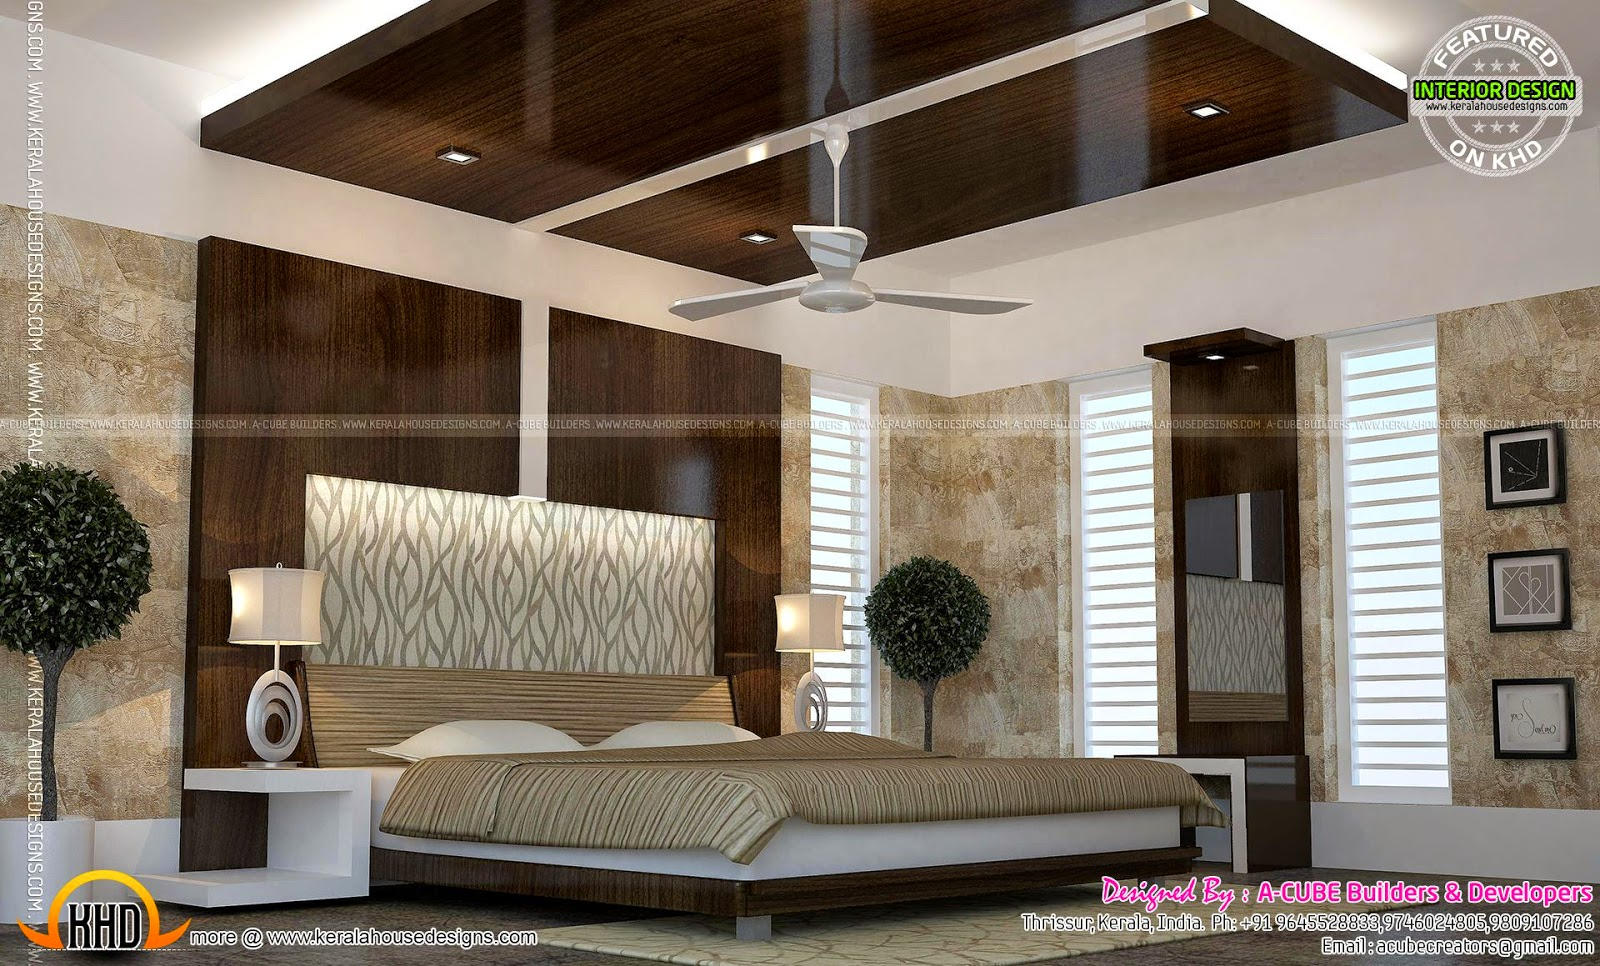 Kerala interior design ideas kerala home design and floor plans Interior design ideas for kerala houses